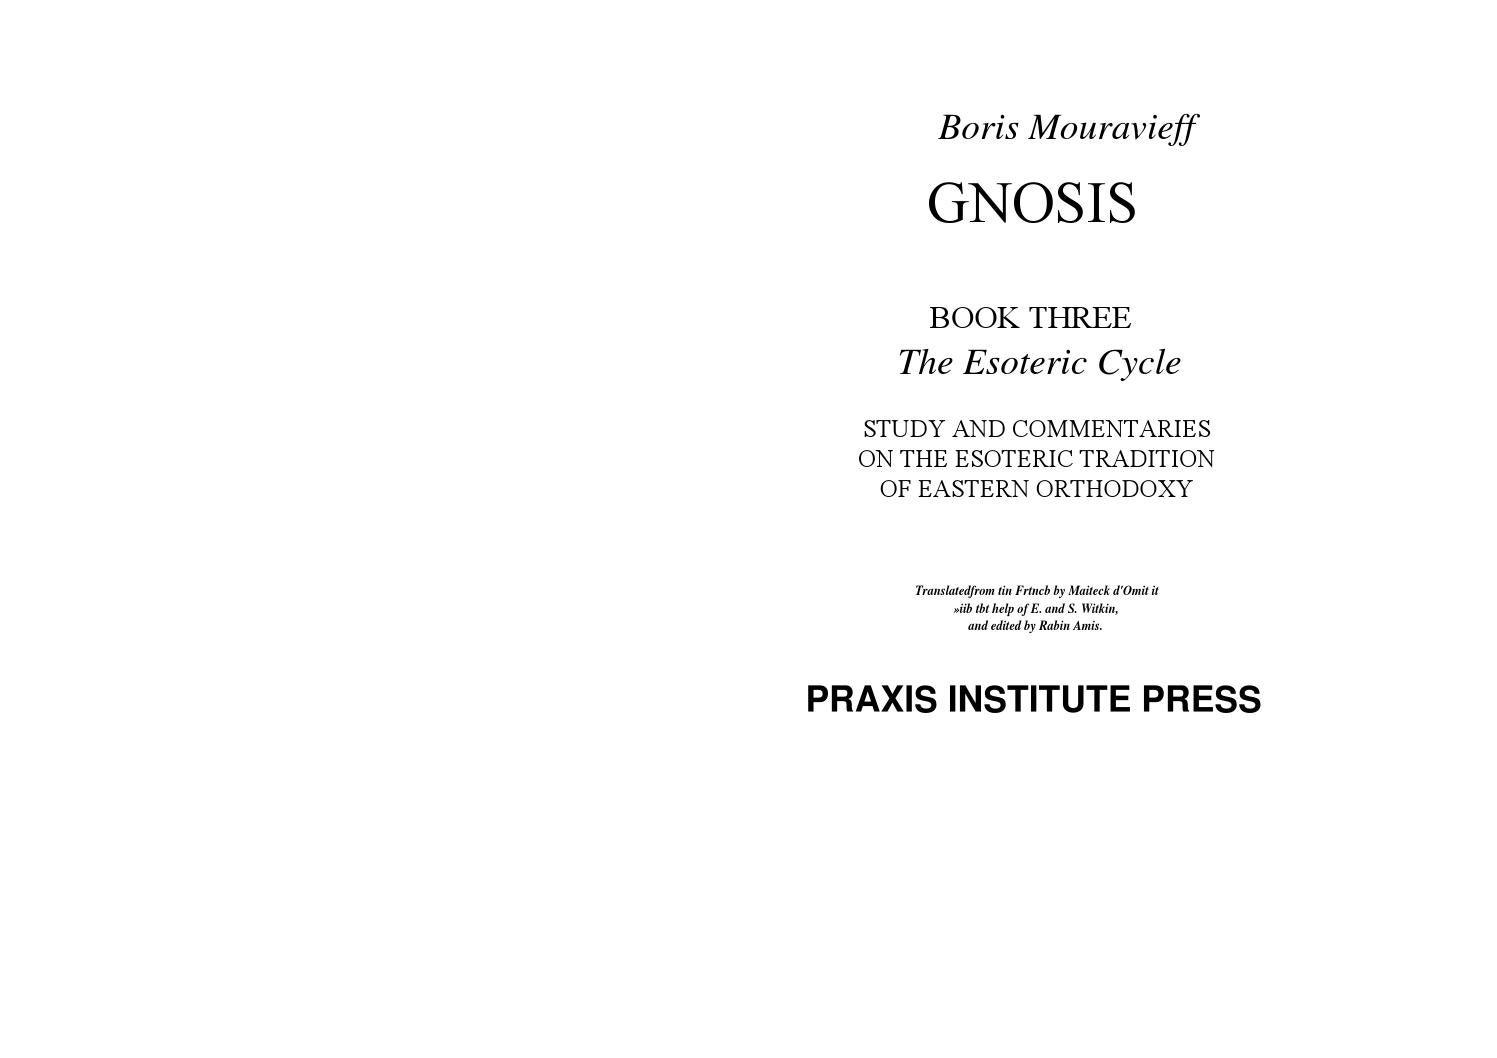 Gnosis Book 3 The Esoteric Ycle By Boris Mouravieff Deconstructing Consciousness